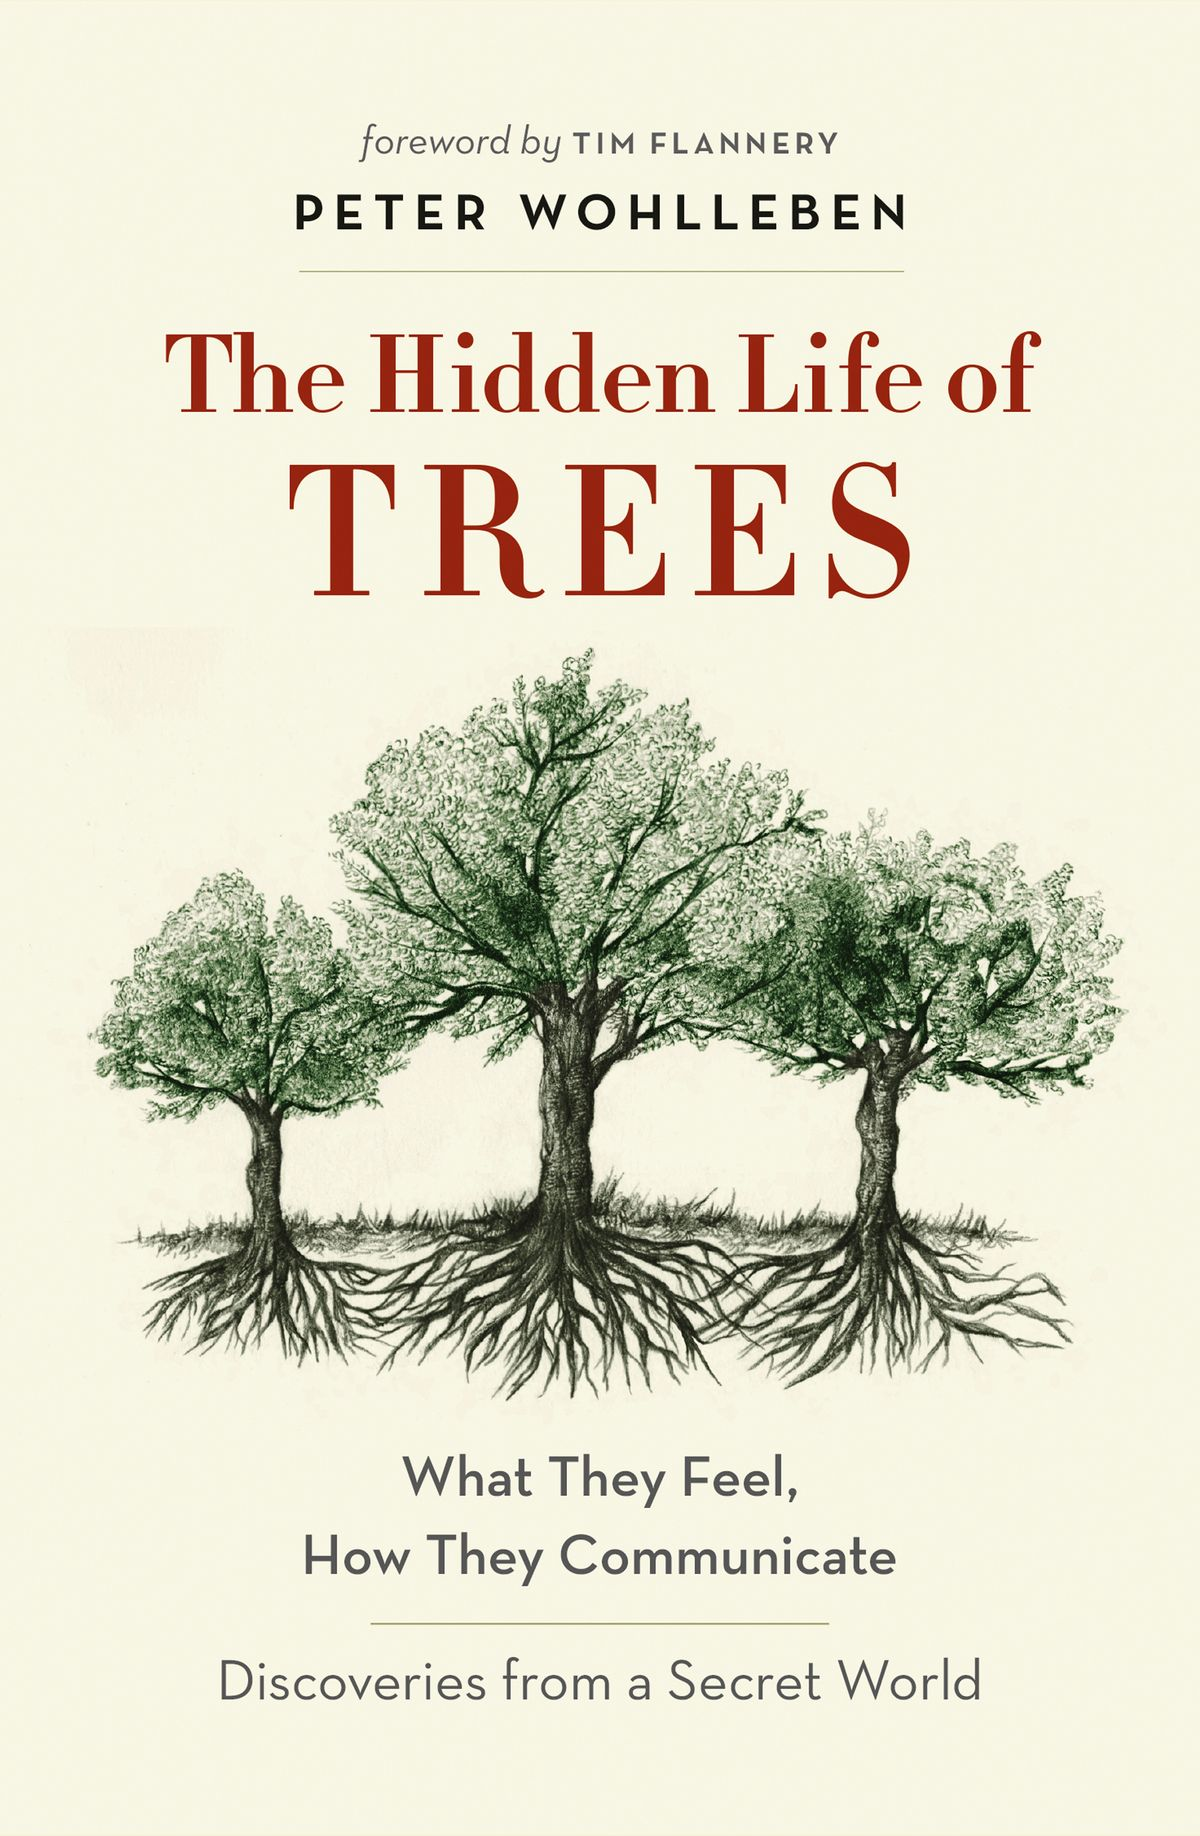 The Hidden Life of Trees by Peter Wohlleben, ISBN: 9781925435108